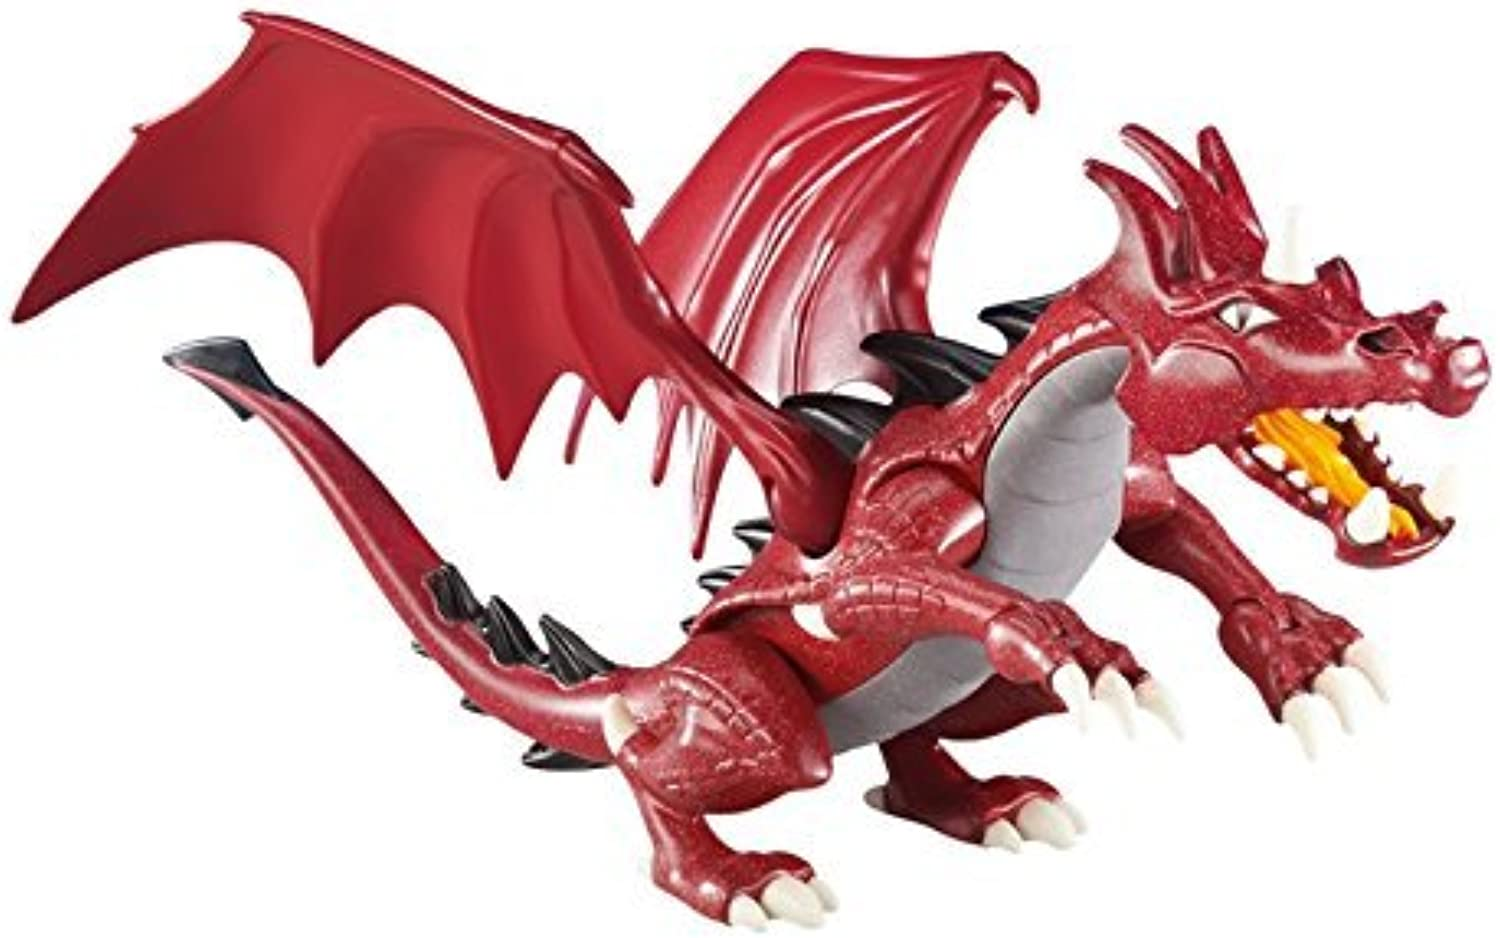 PLAYMOBIL 6498 - Roter Drache (Folienverpackung)